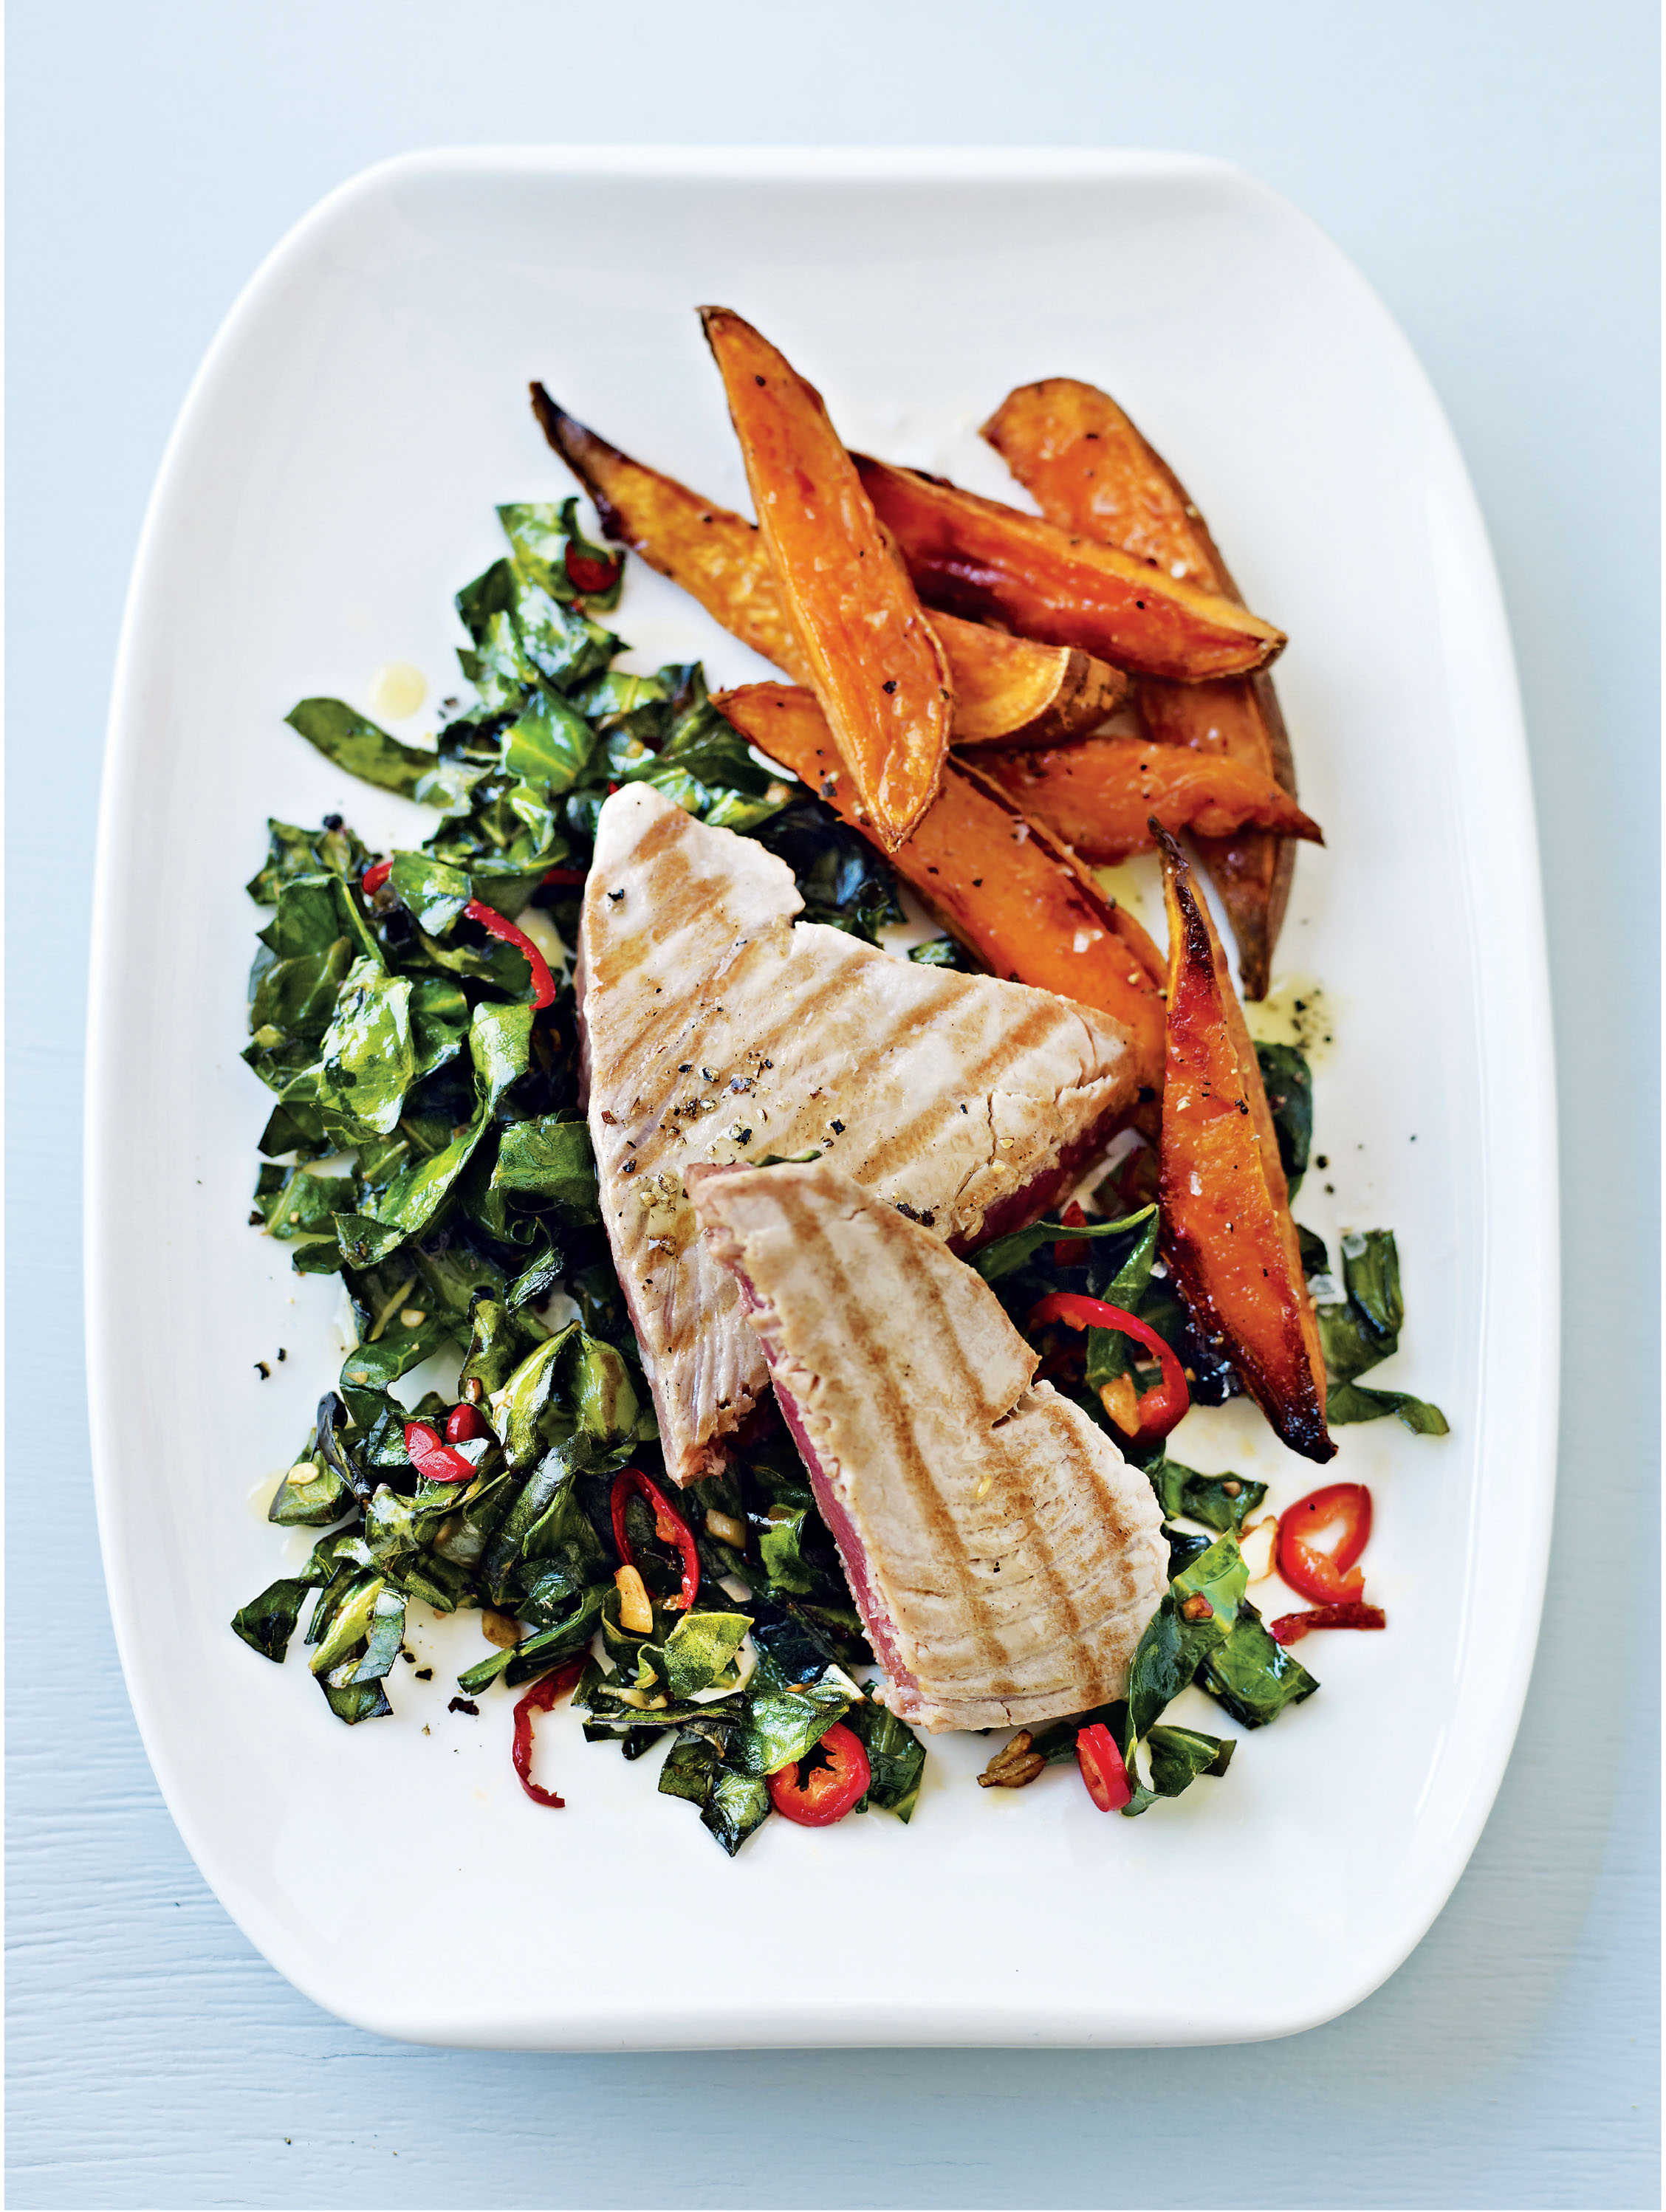 Tuna steaks with sweet potato wedges and spring greens